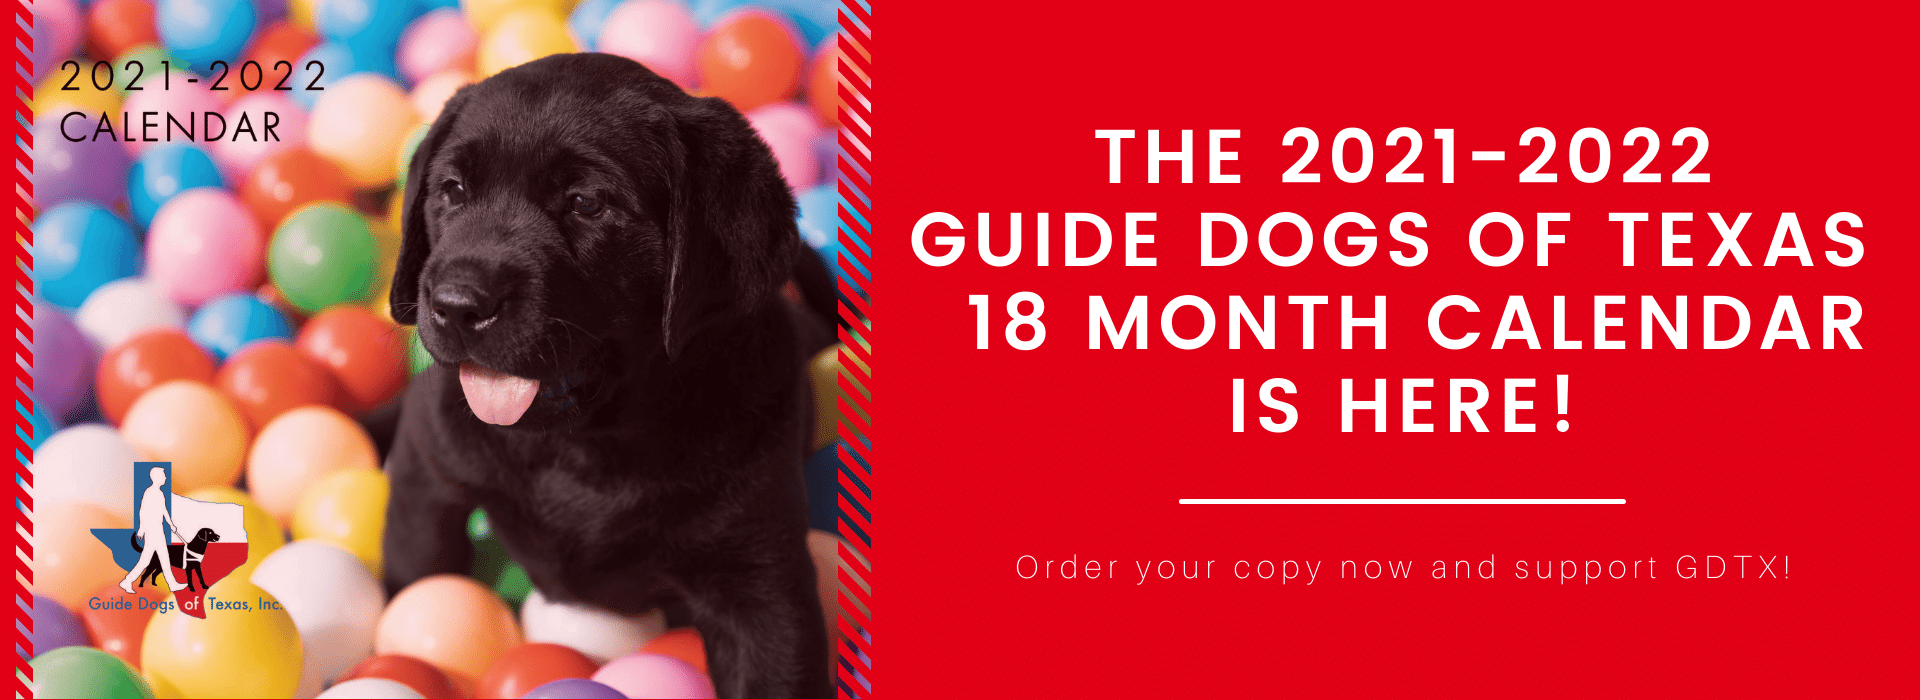 The 2021-2022 Guide dogs of Texas 18 month Calendar is Here!